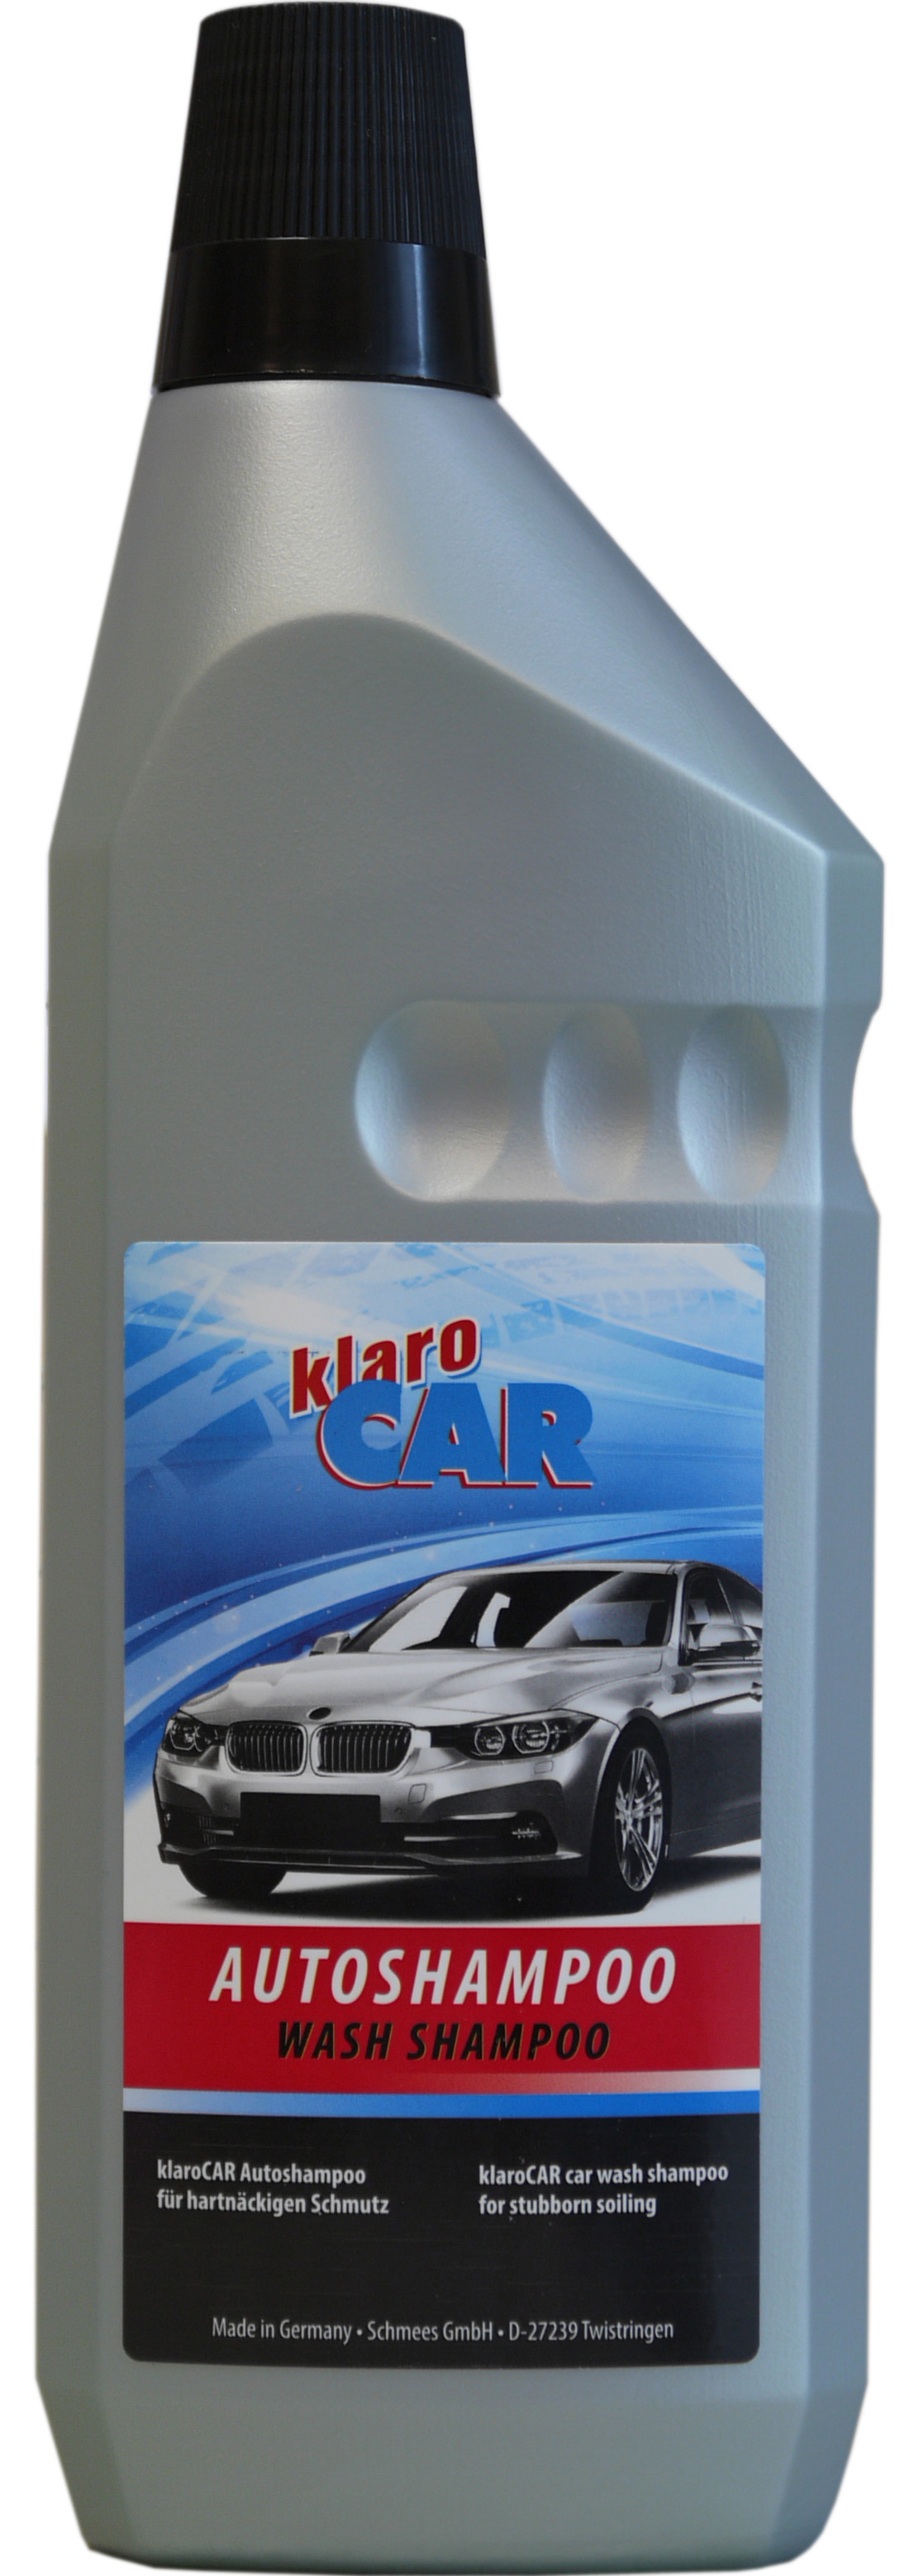 00714 - klaro CAR Autoshampoo 1000 ml